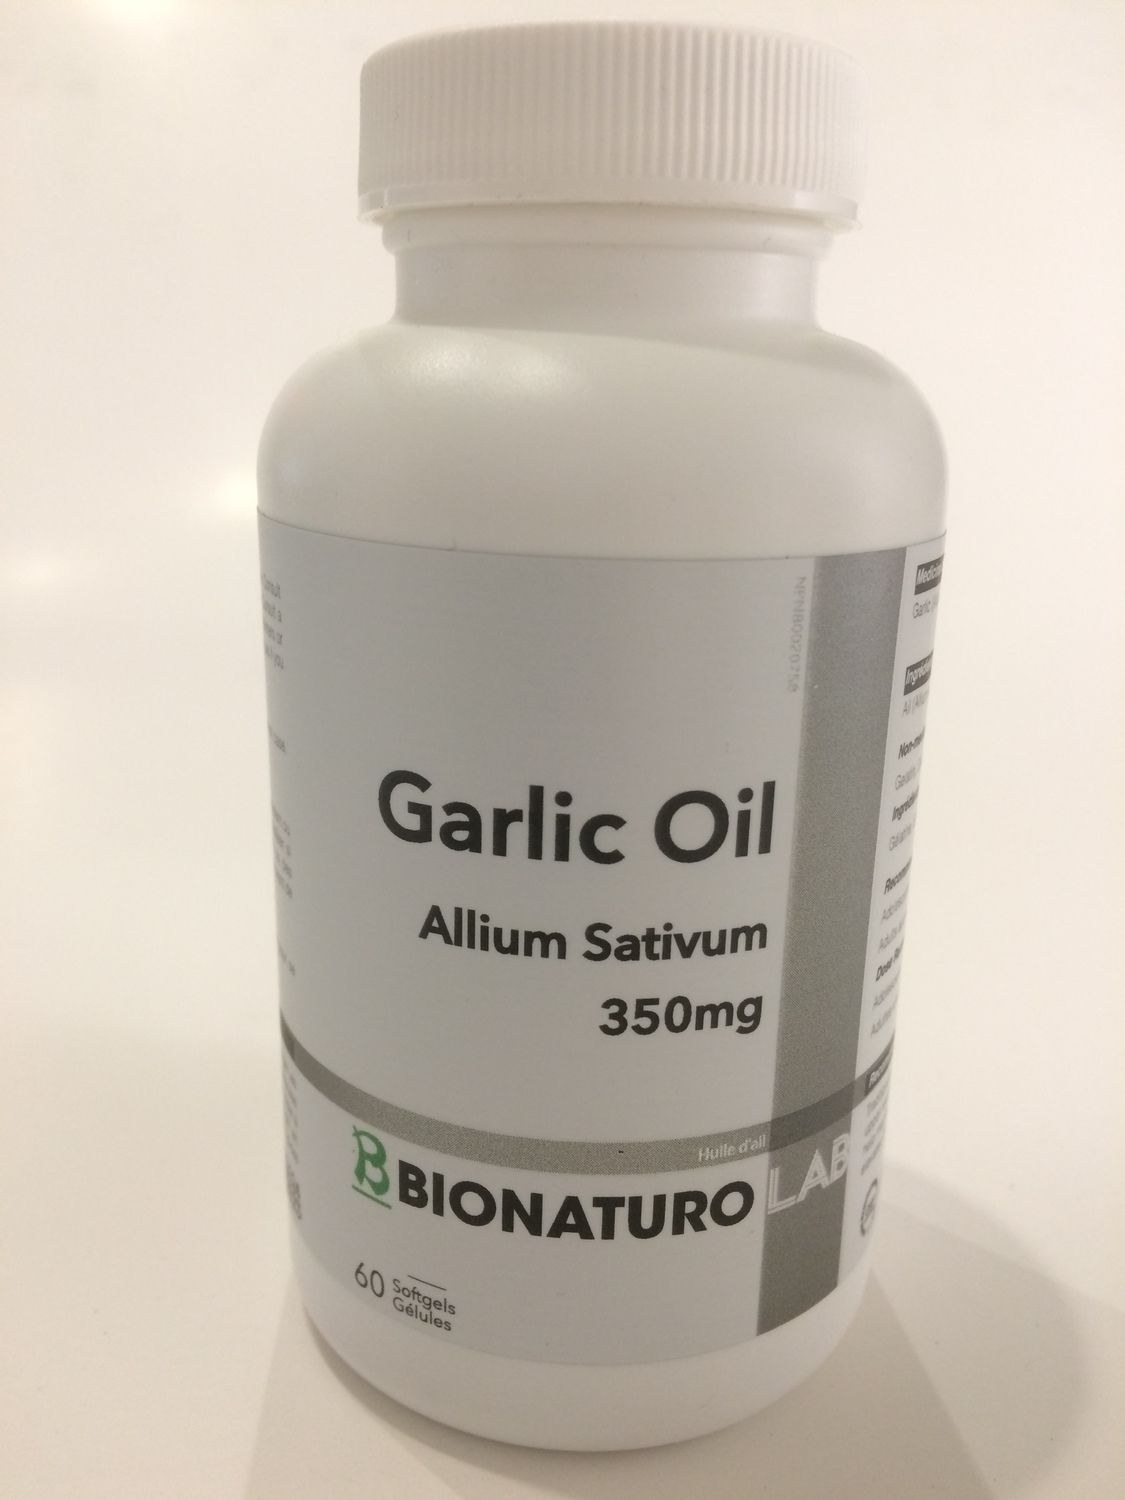 Garlic Oil Allium Sativum